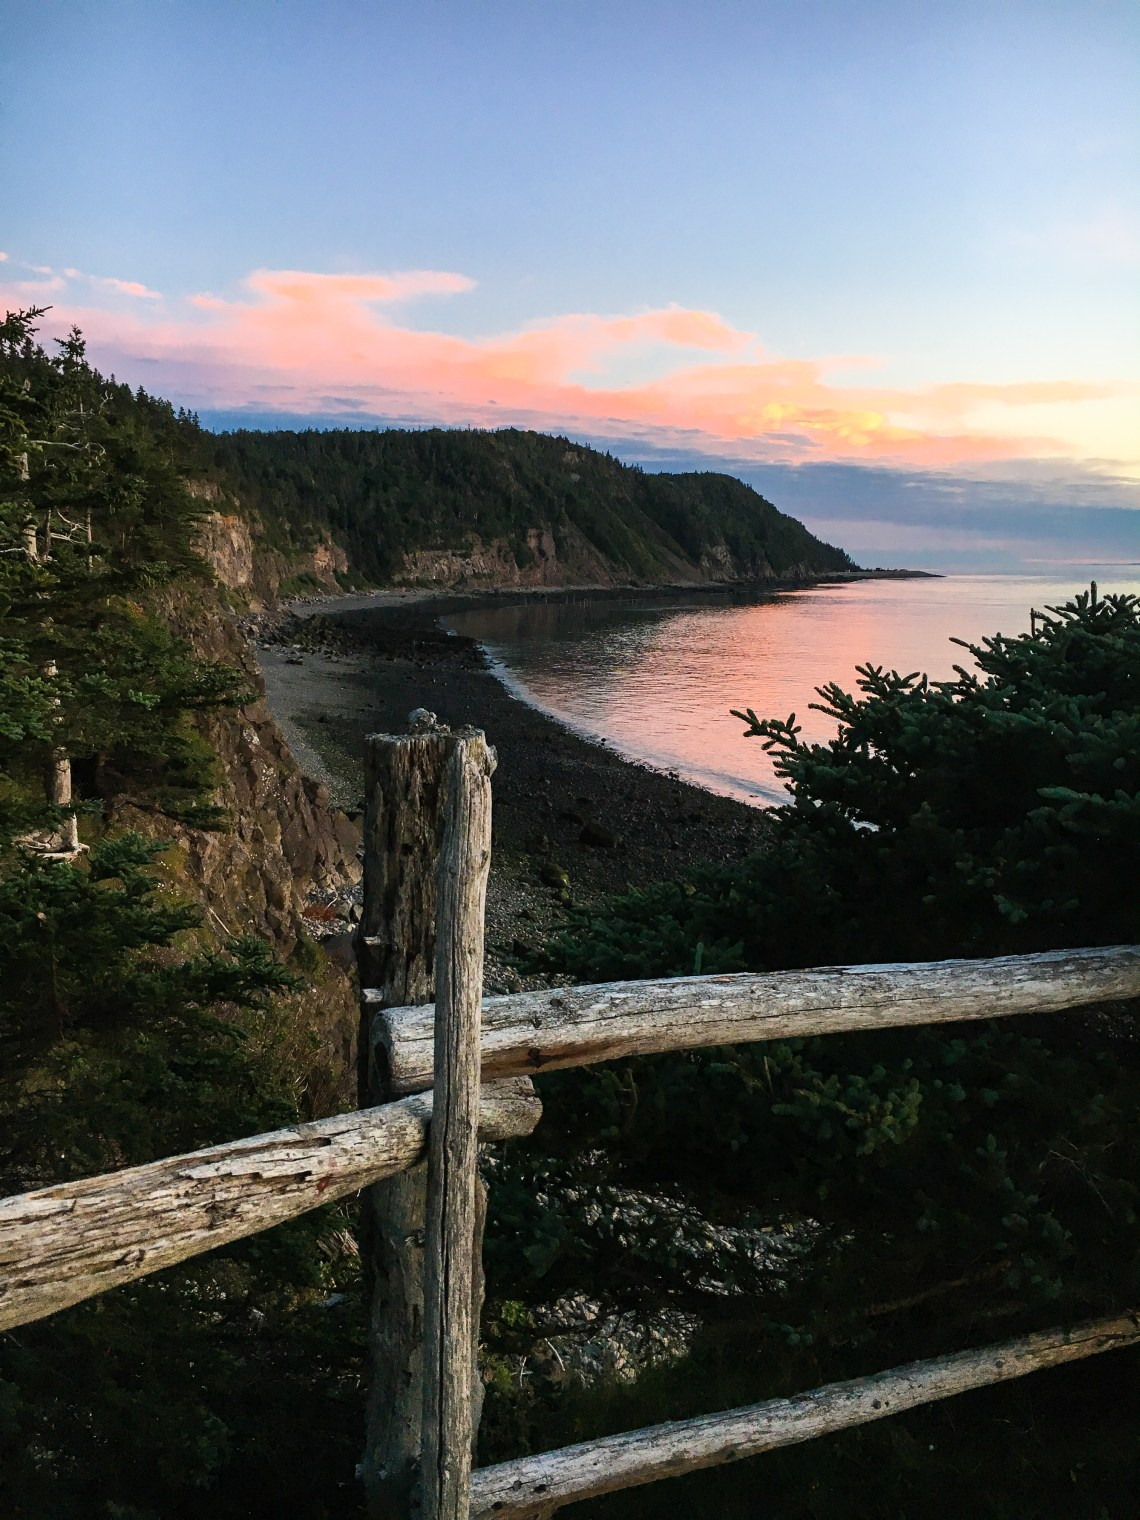 Sunset at Whistle Point 2